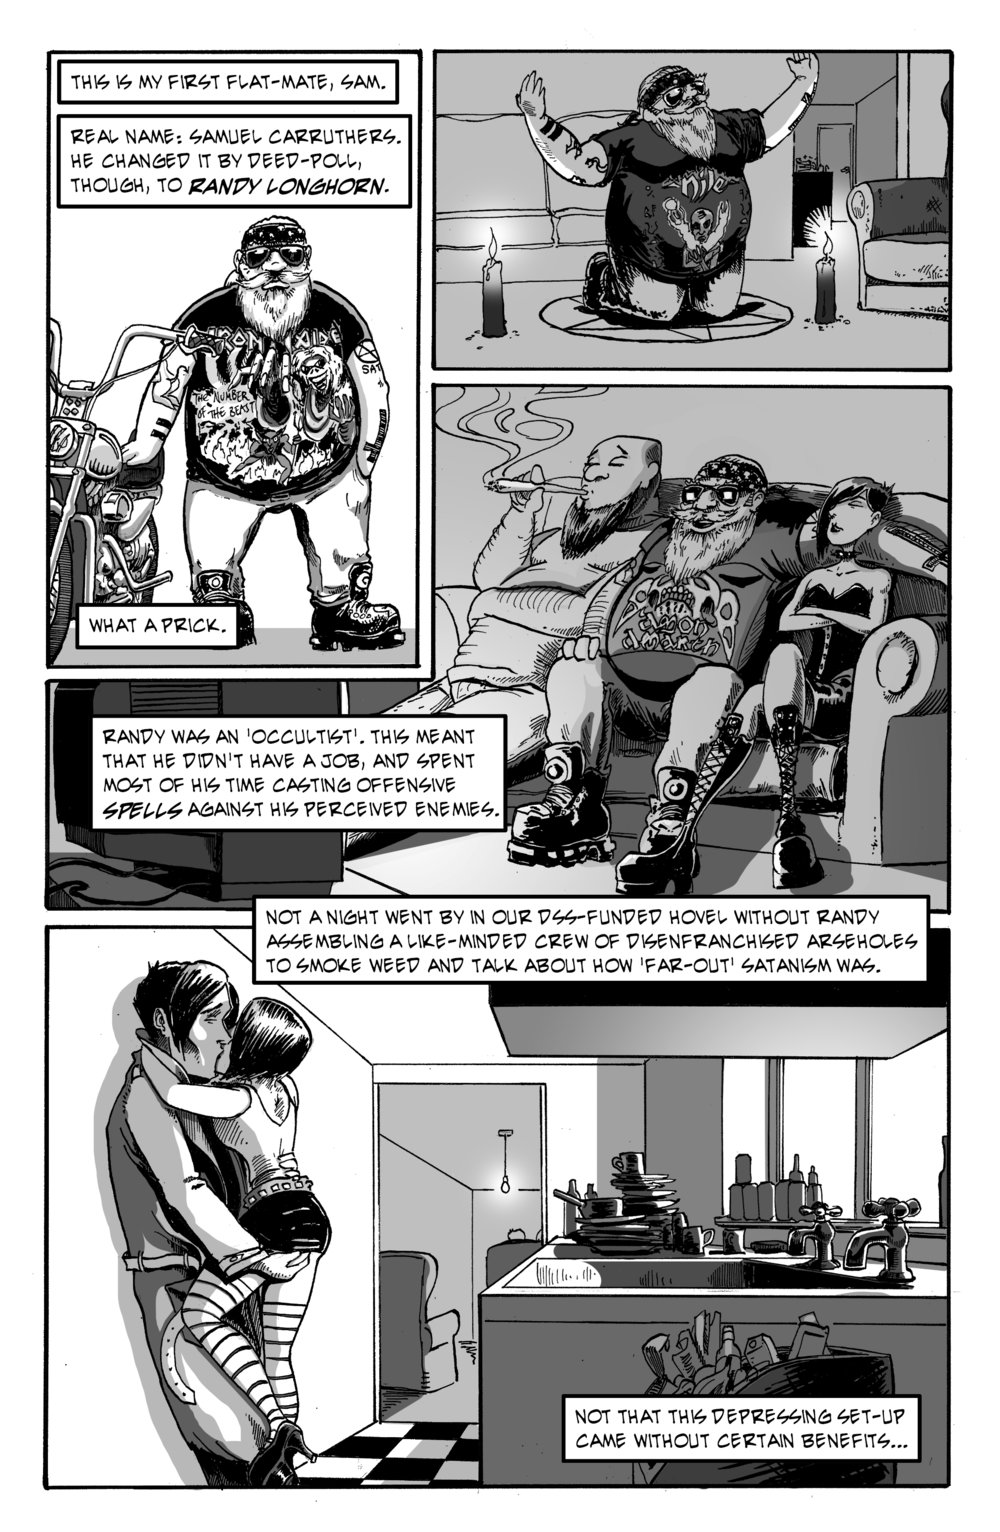 Down to the Well, page 2, inks and letters